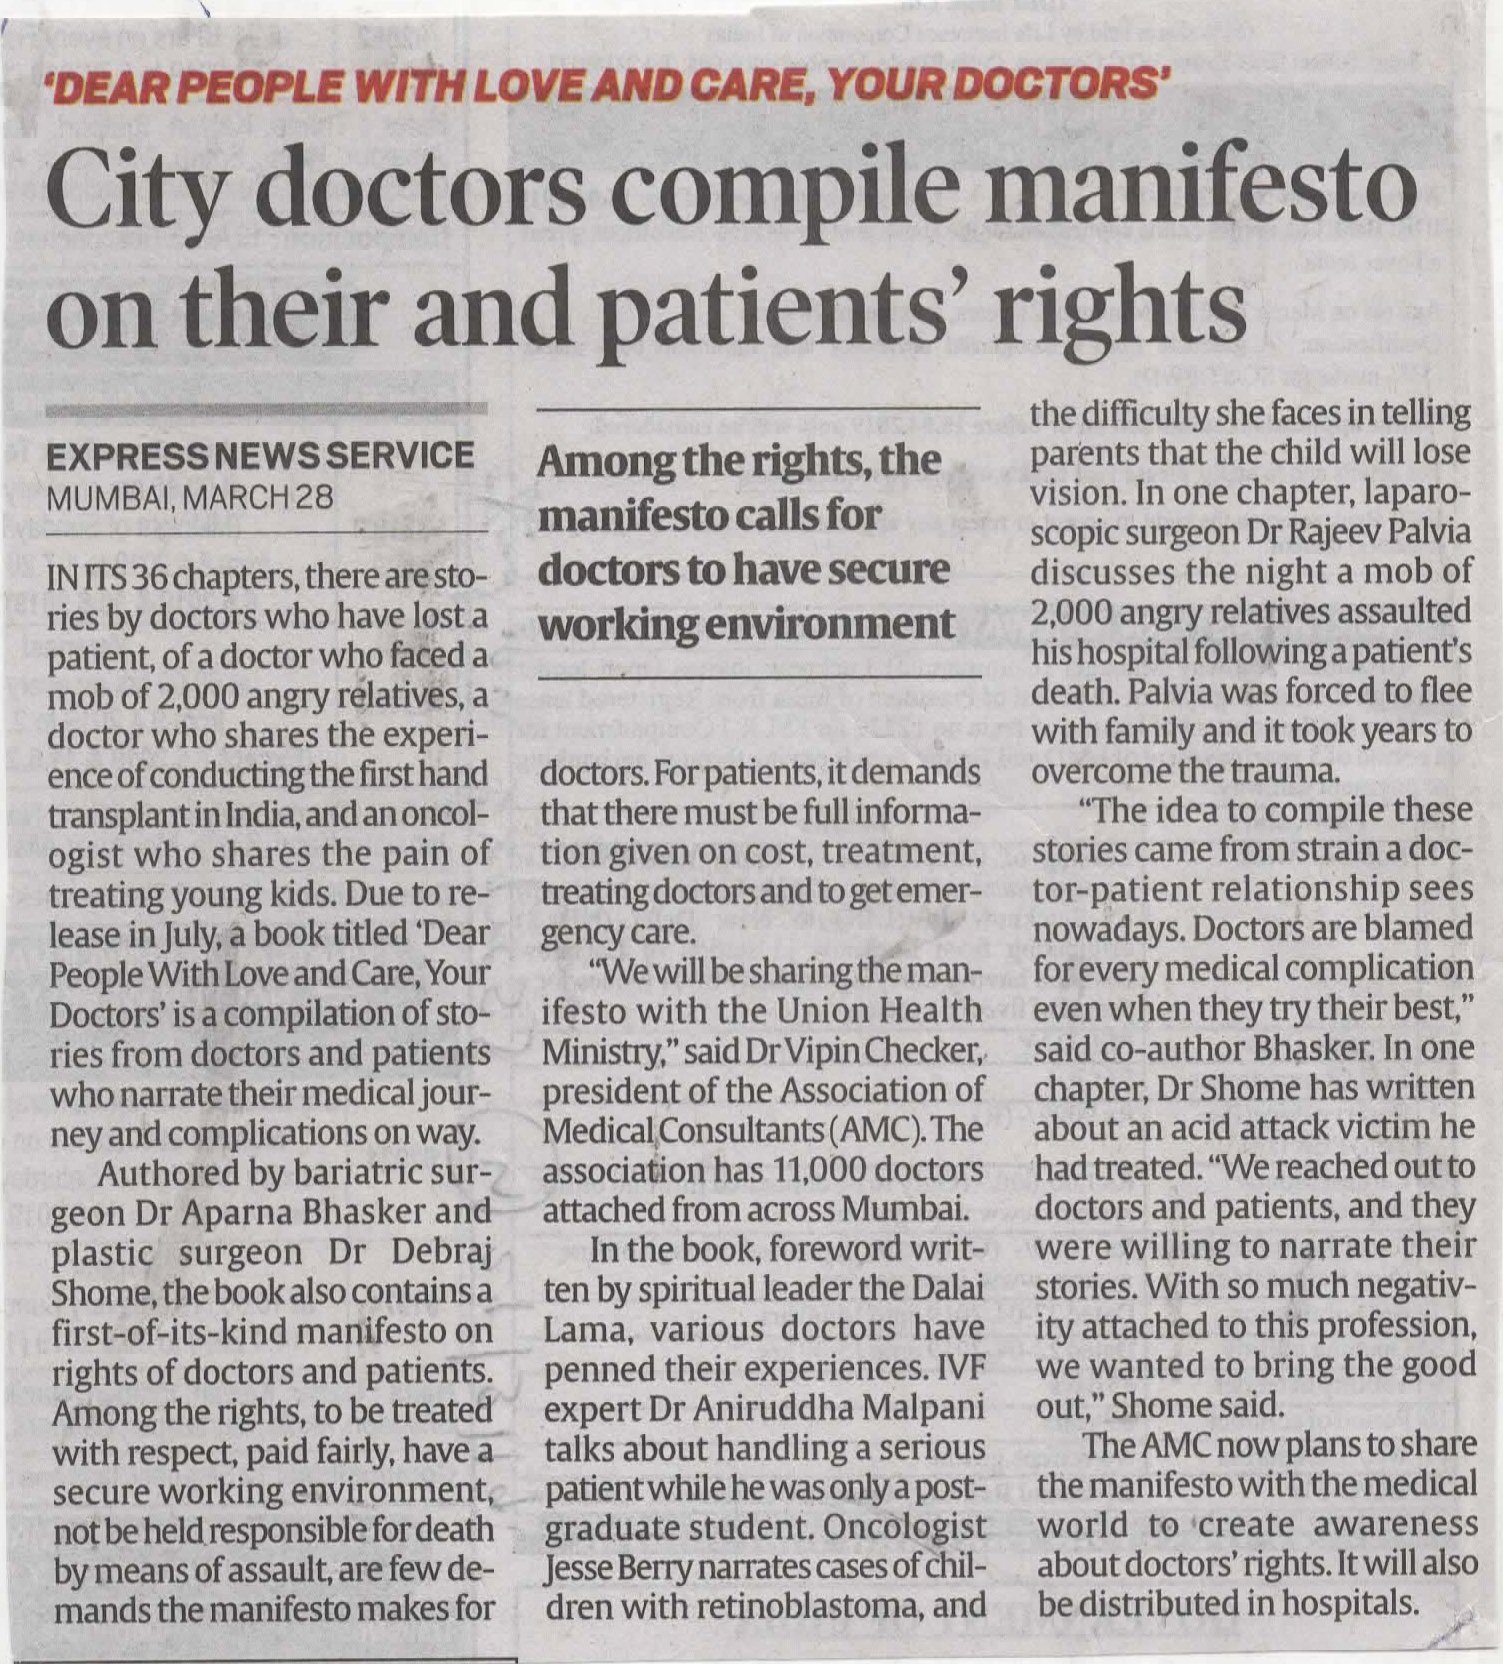 City Doctors Compile Manifesto On Their And Patients Rights - Indian Express